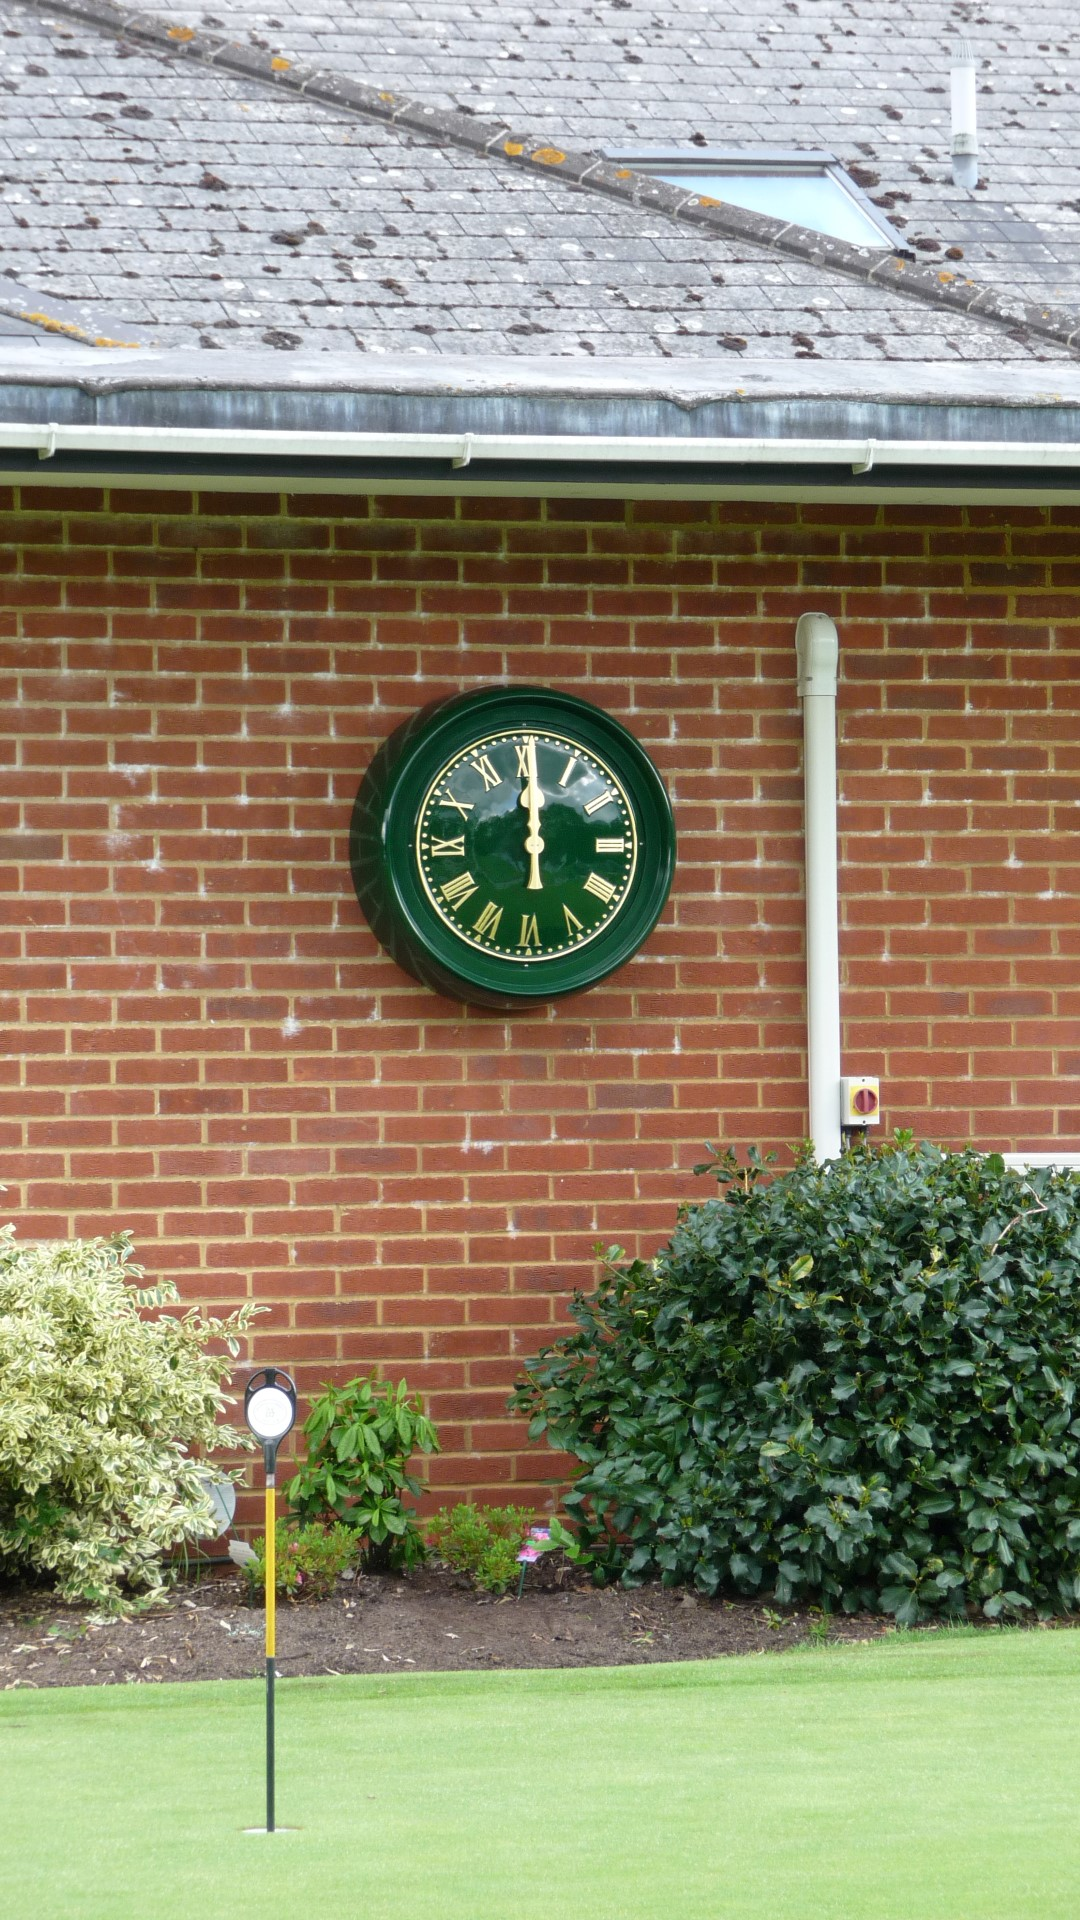 Hankeley Golf Club clock